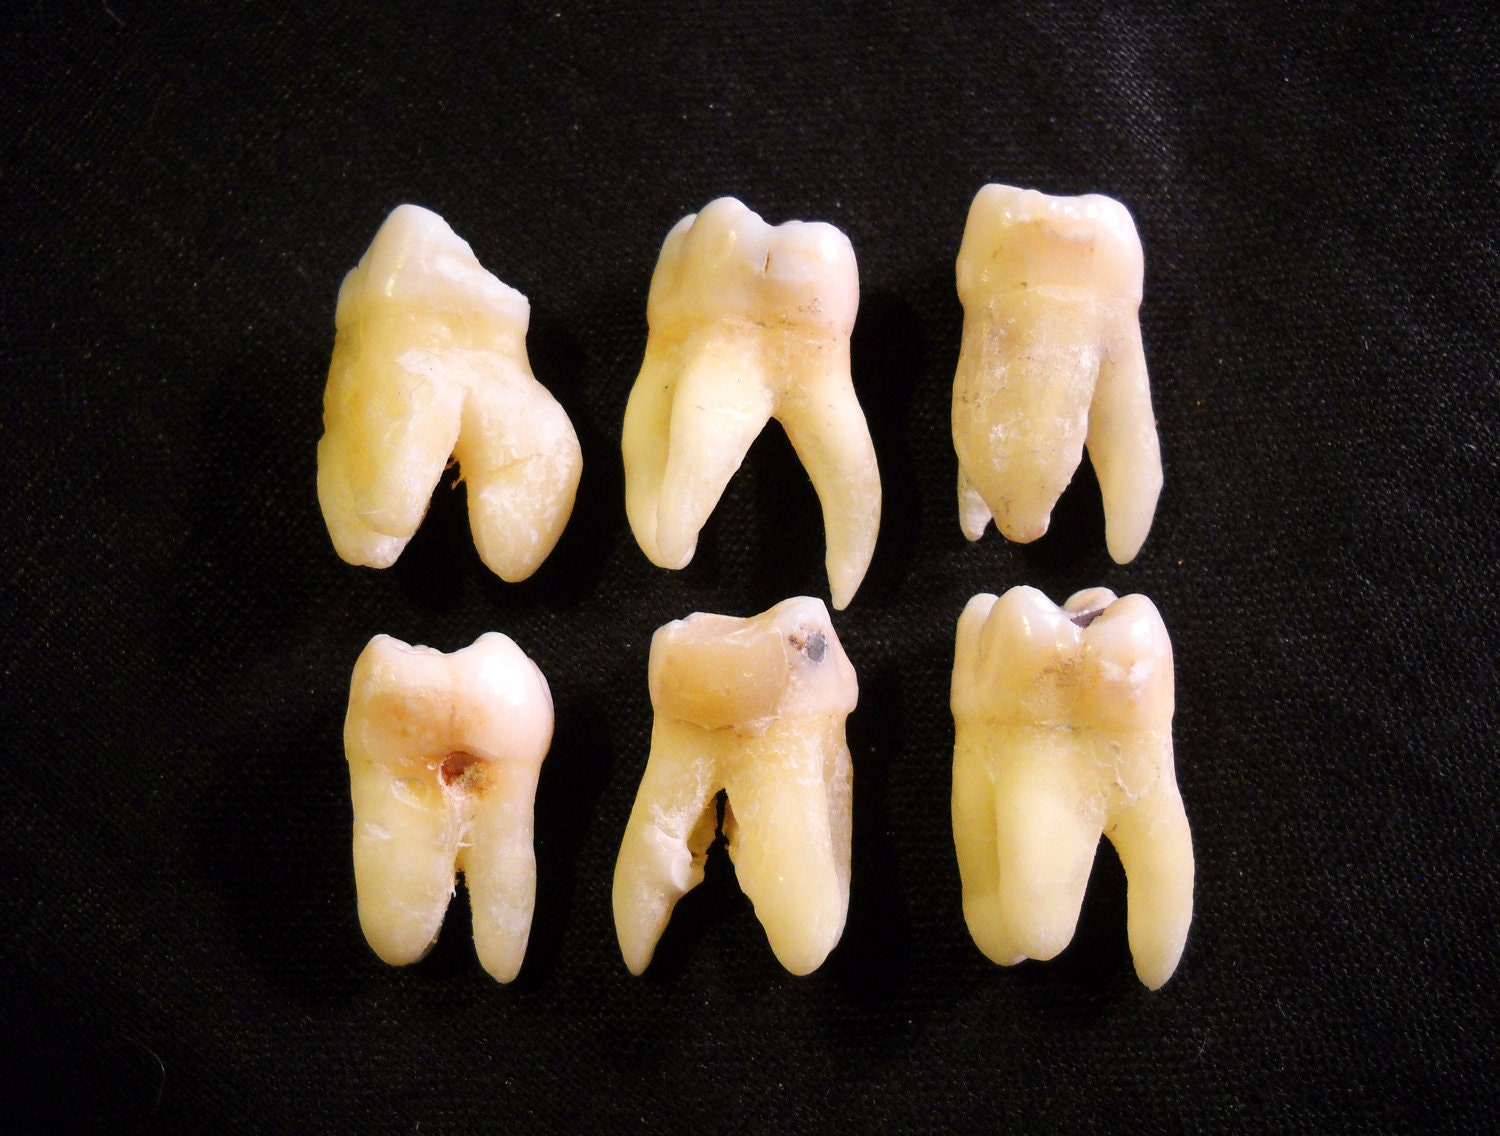 LOCATION OF THE TEETH Normally a human receives two sets of teeth during a lifetime The first deciduous or primary set consists of 20 teeth baby teeth